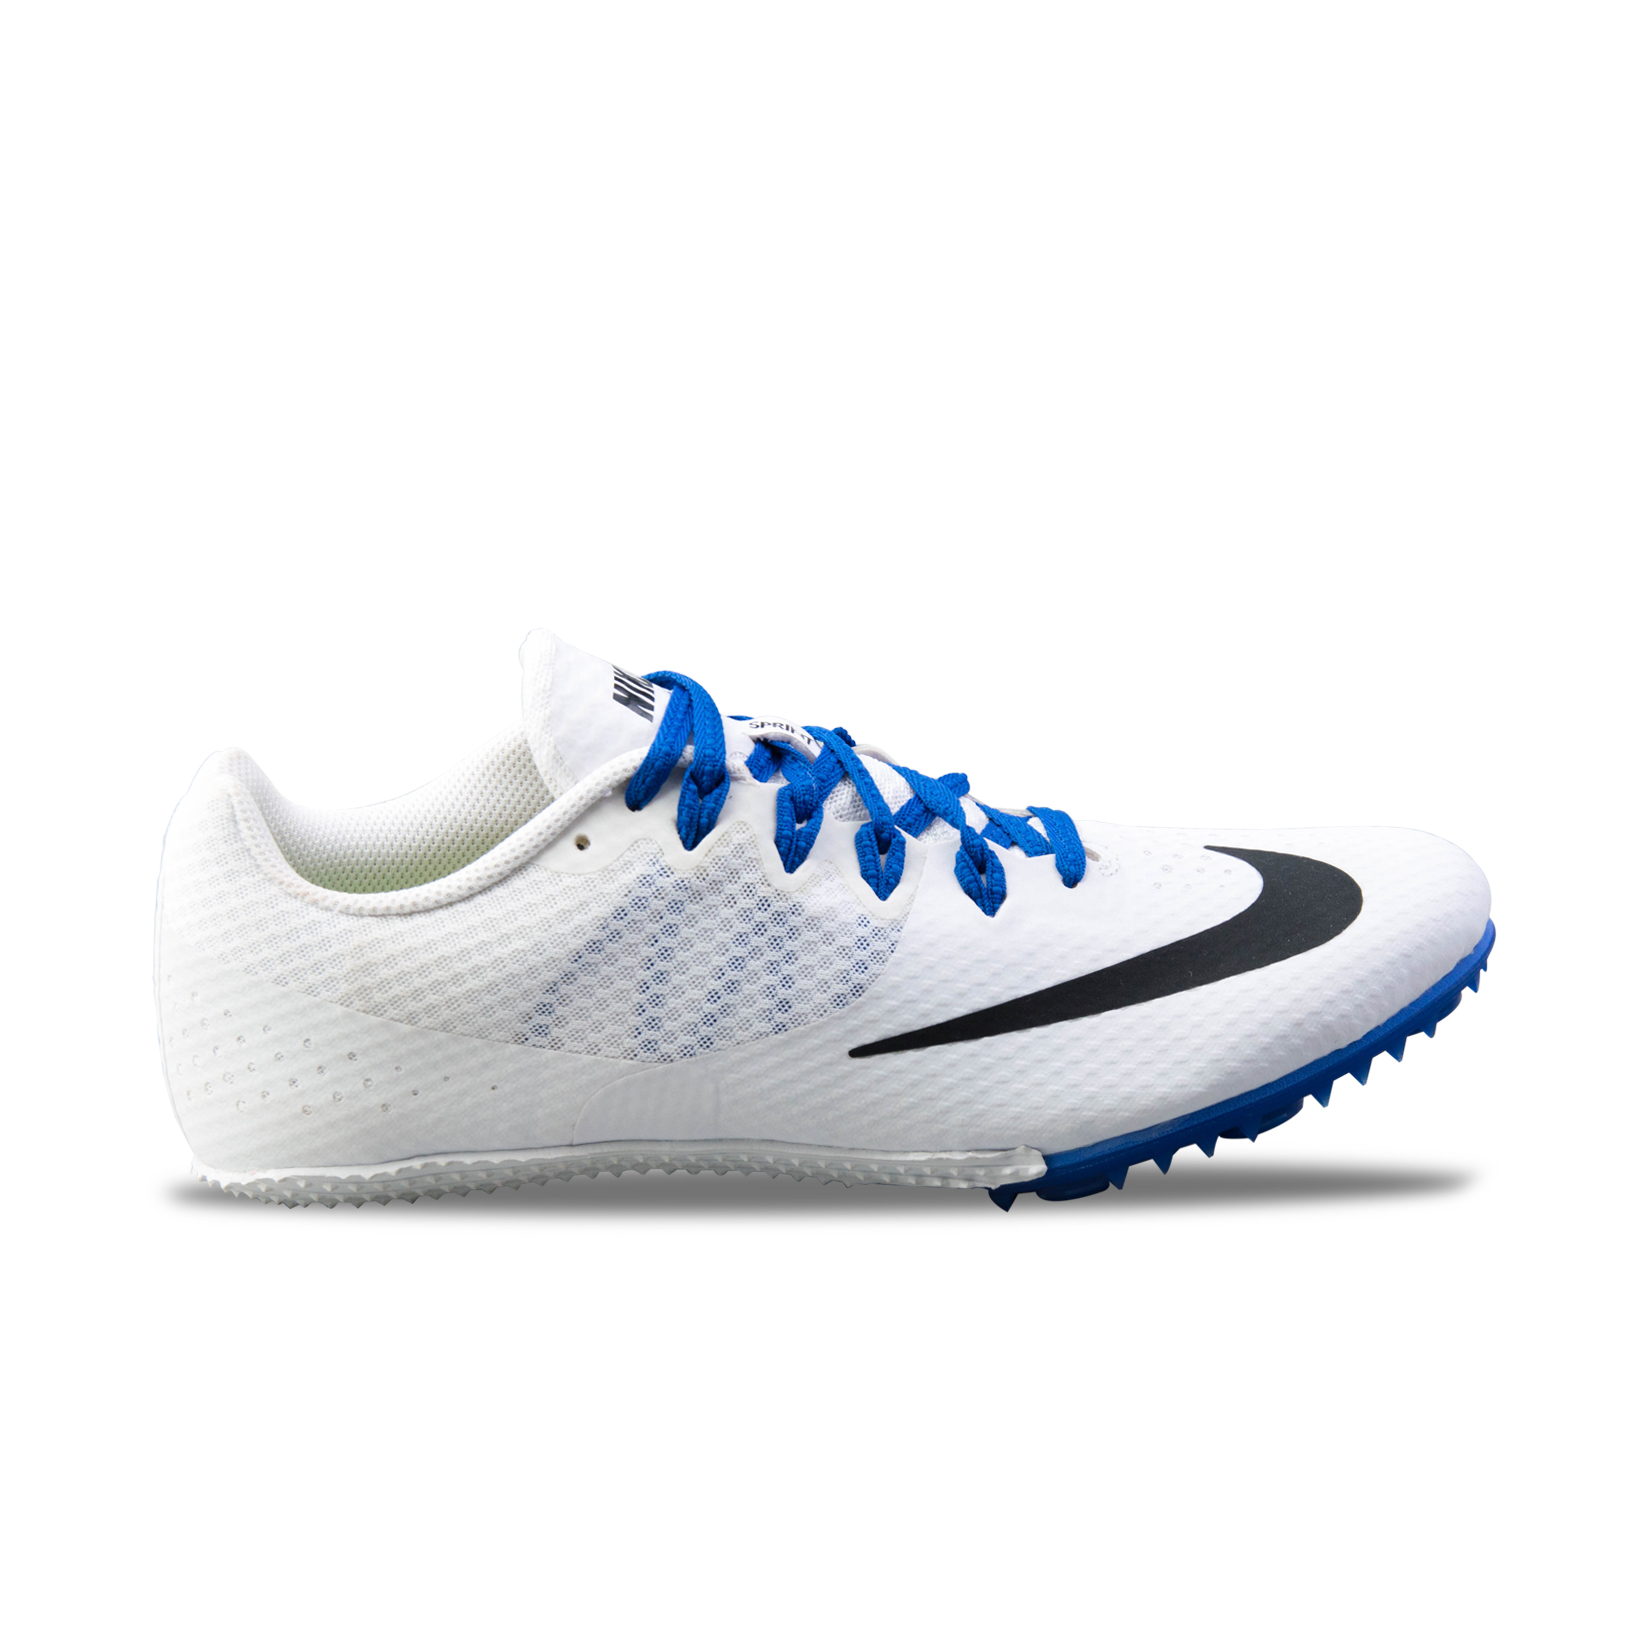 Nike Zoom Rival S8 White - Blue